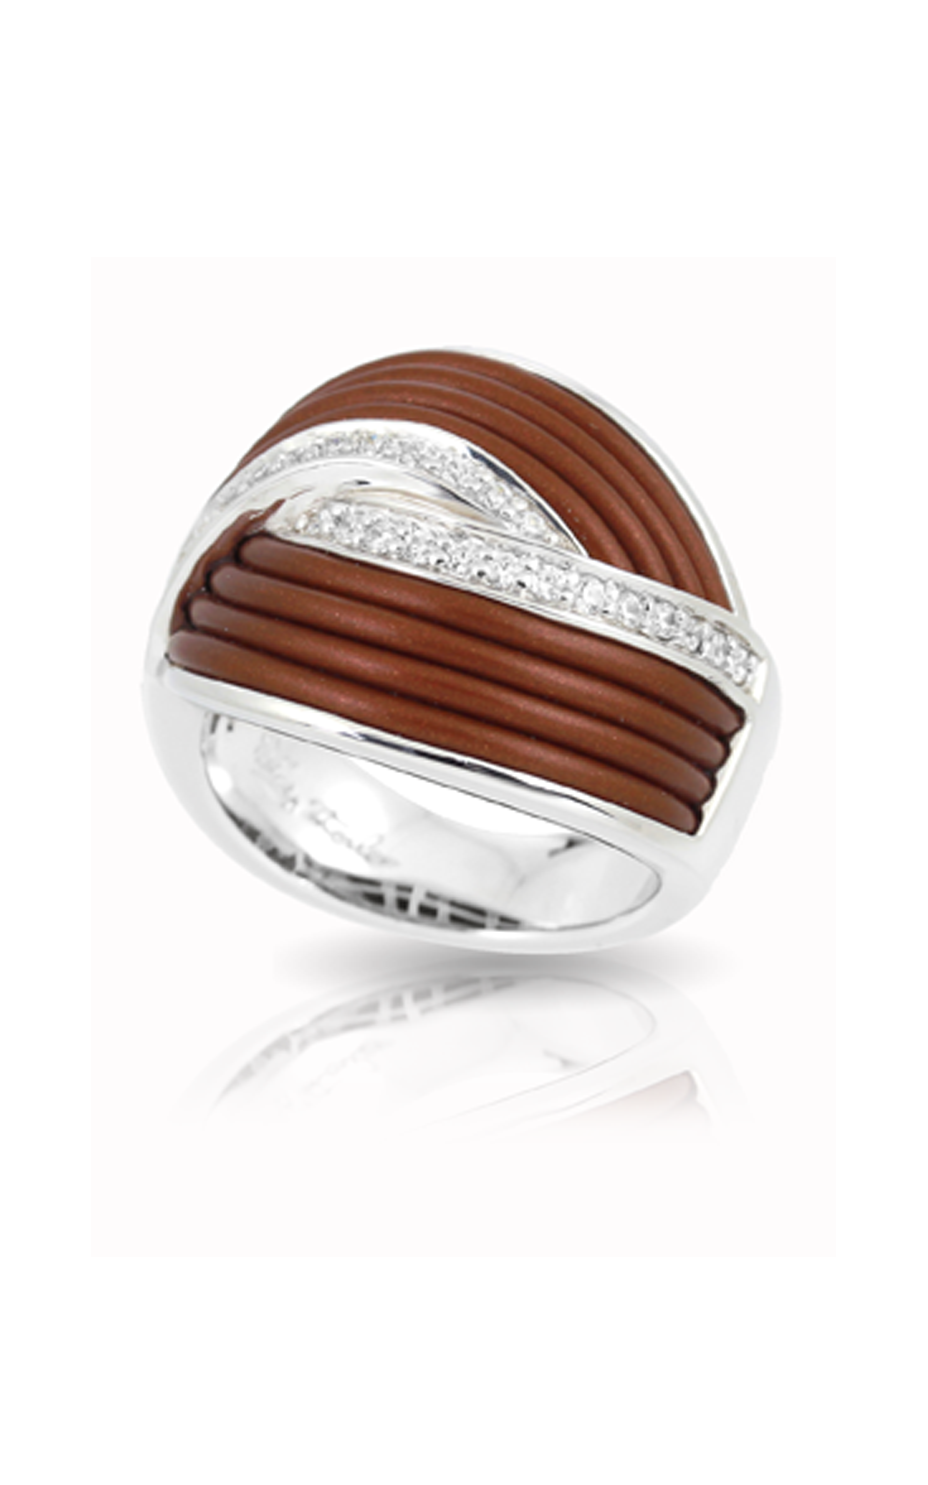 Belle Etoile Eterno Brown Ring 01051220502-9 product image